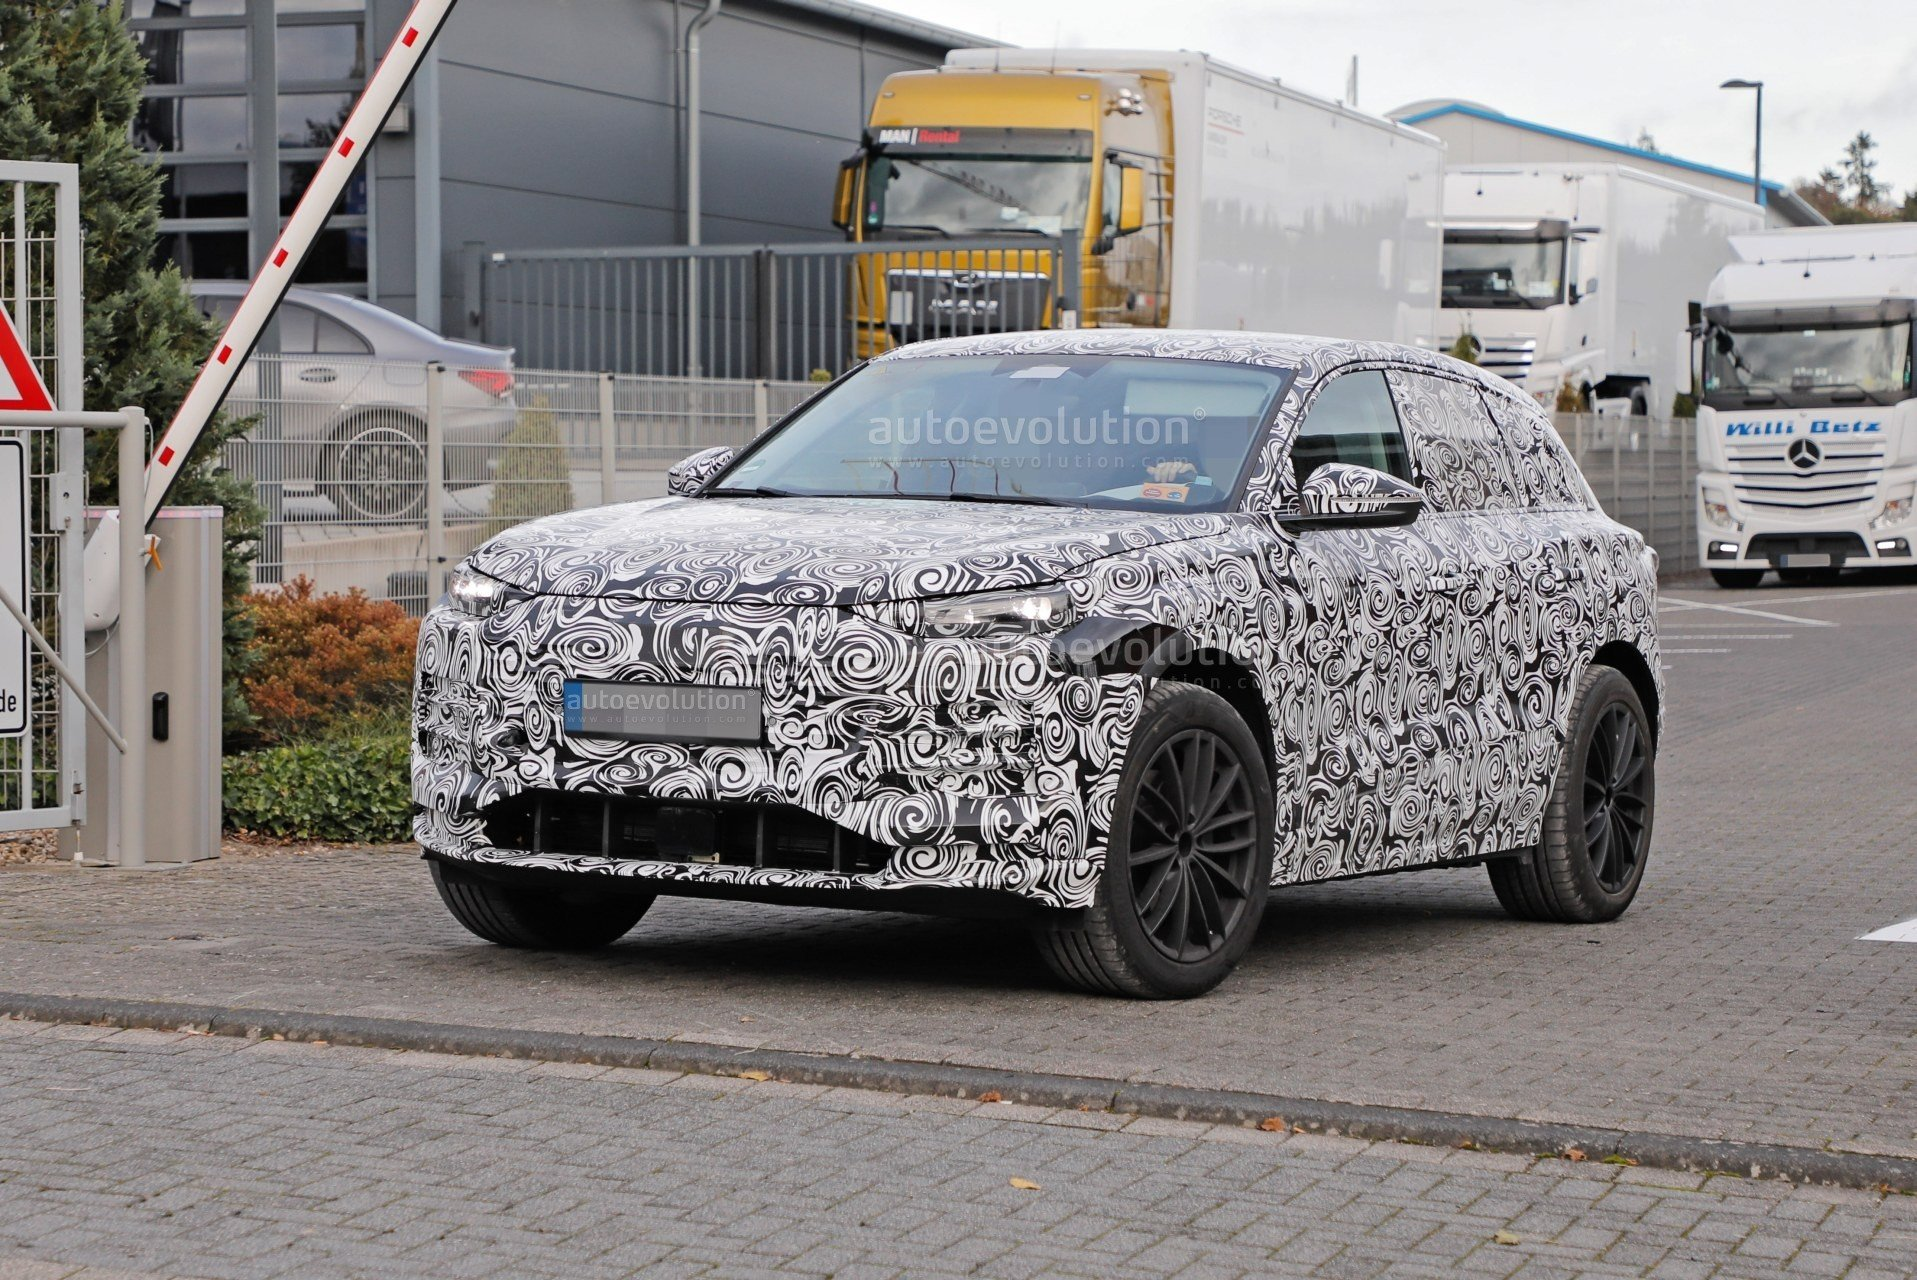 2023-audi-q6-e-tron-prototype-spied-wearing-full-camouflage-is-fully-electric_4.jpg